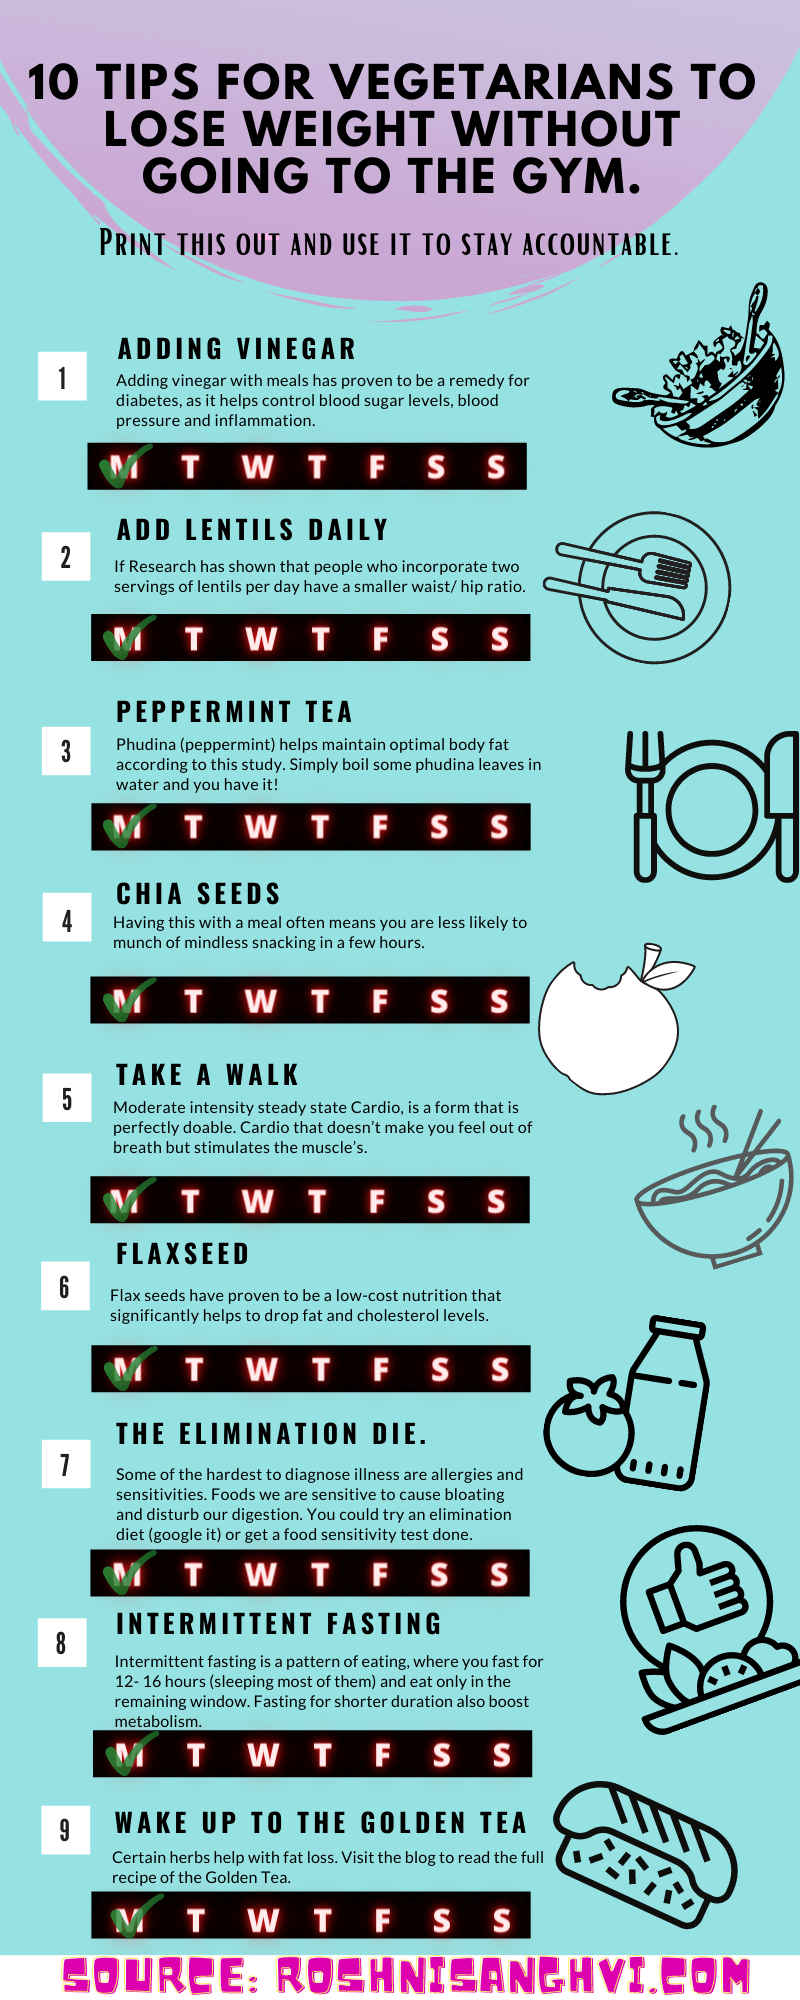 Top 9 Tips for Vegetarians to Lose Belly Fat Fast-infographic - plaza